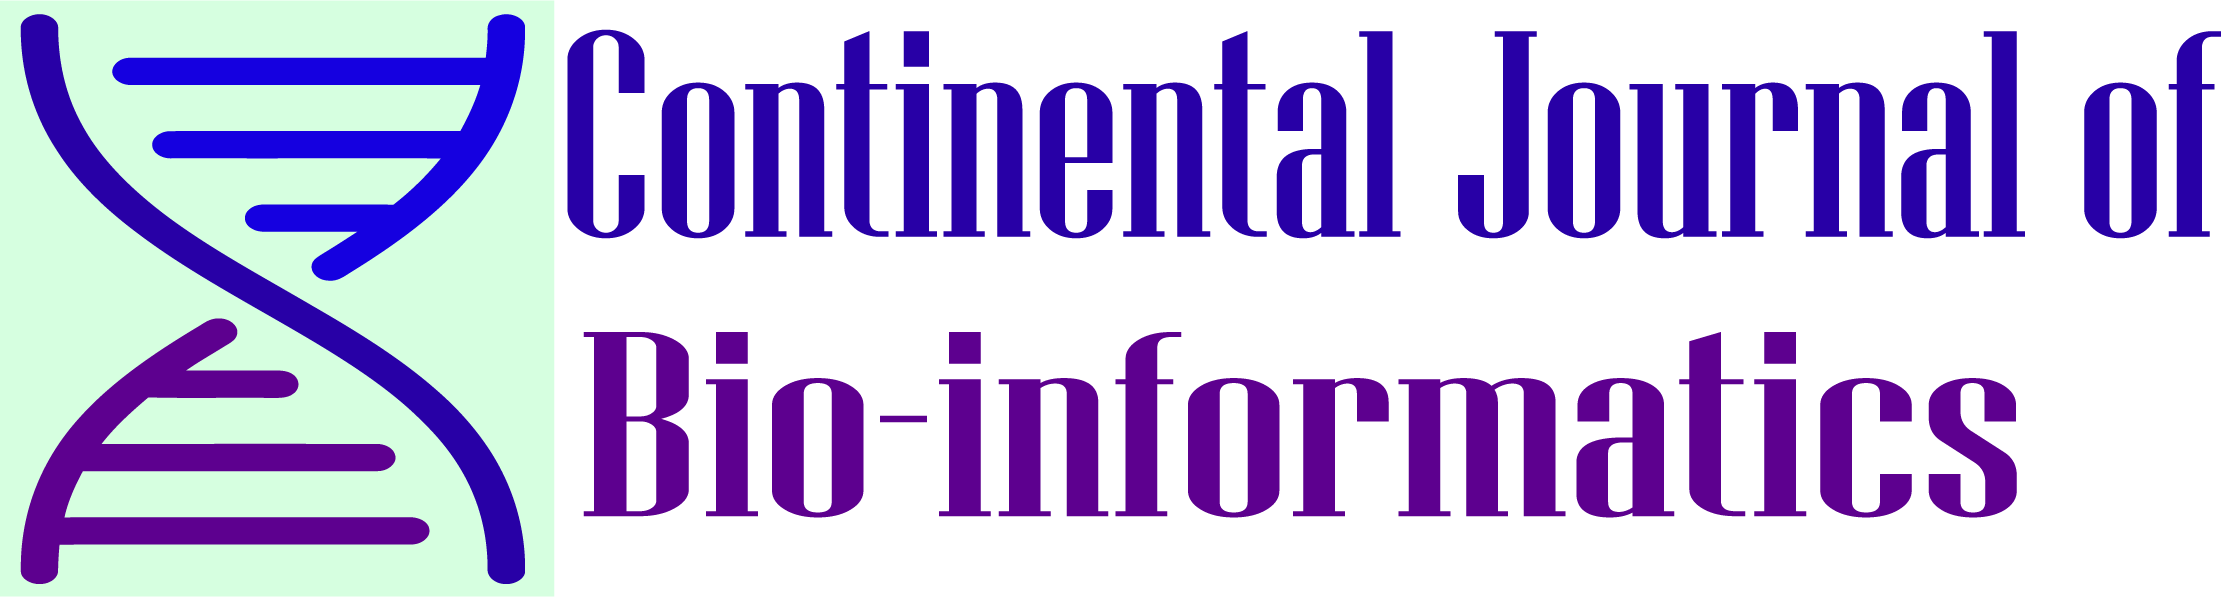 Continental Journal of Bioinformatics (CJBI)